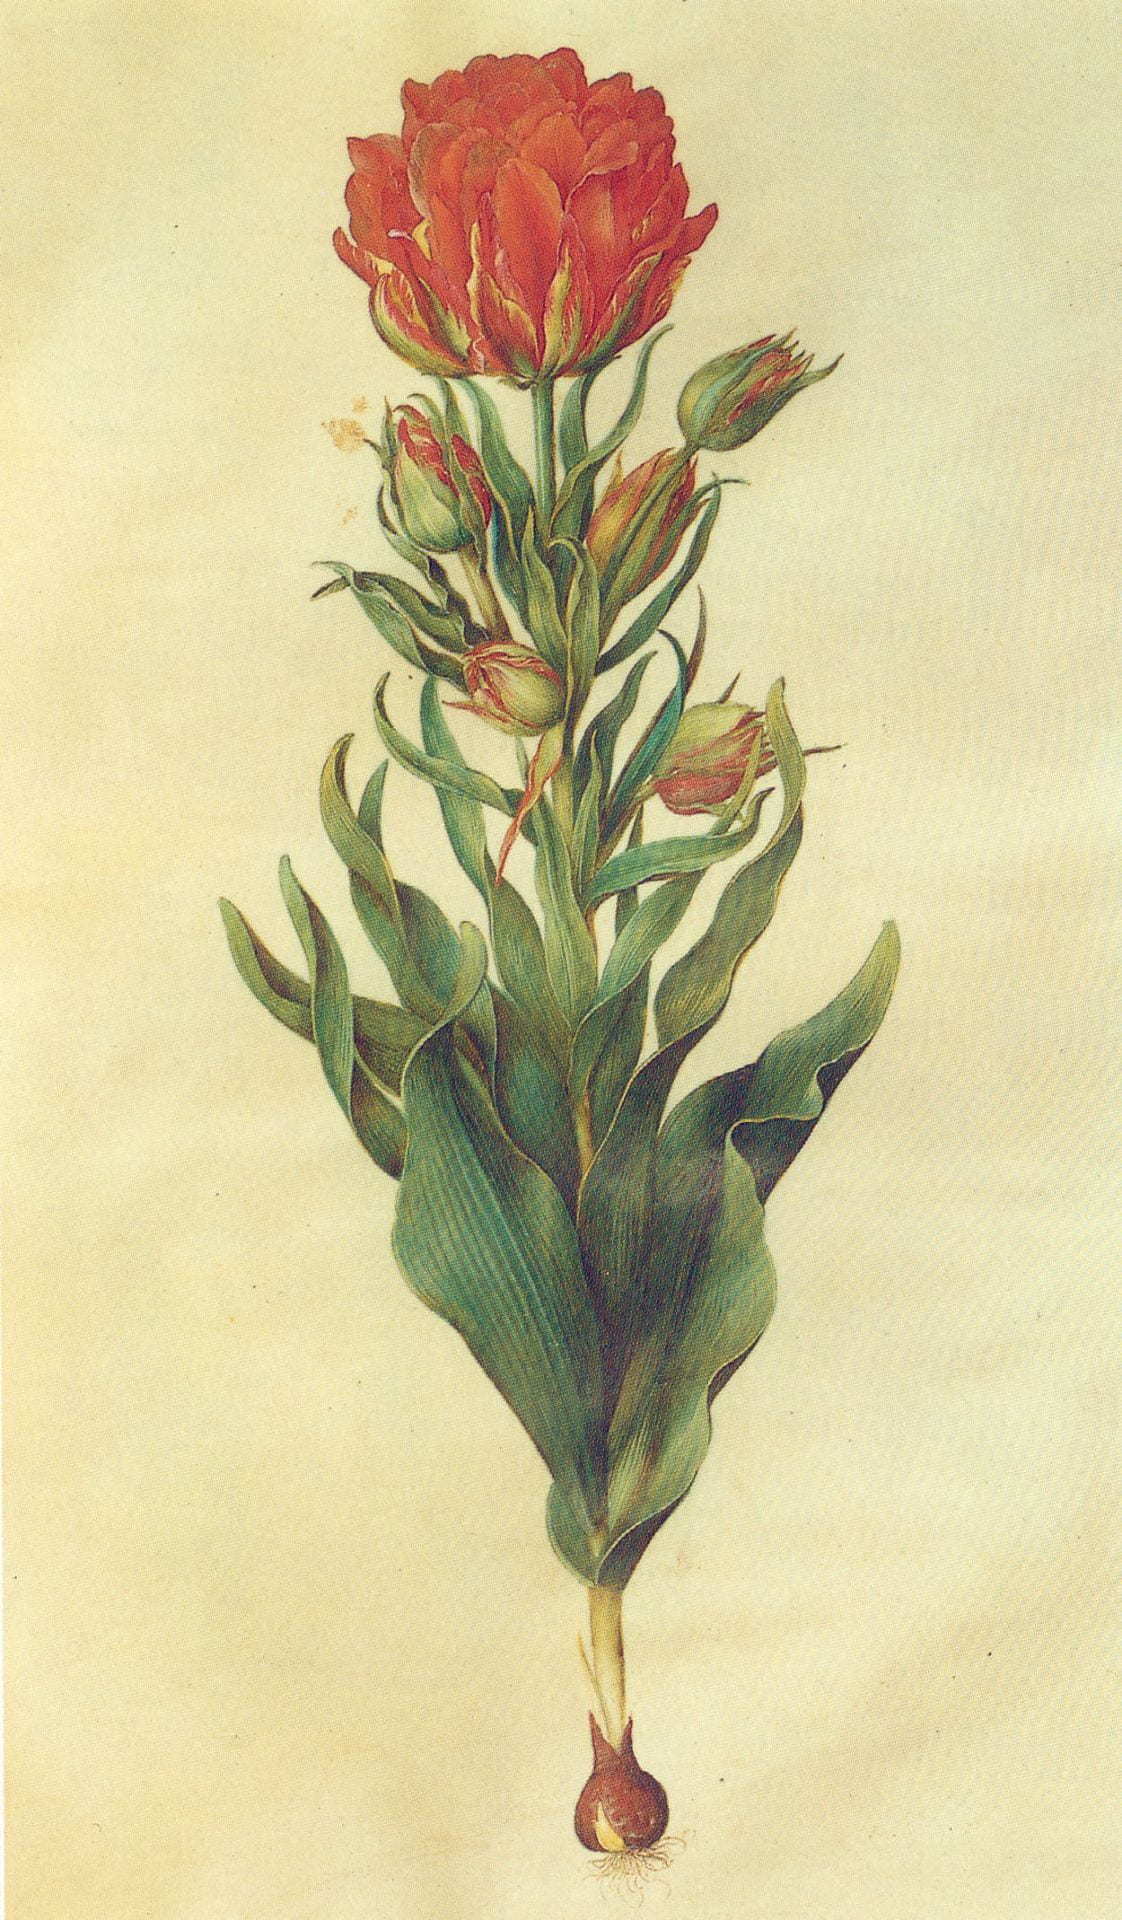 Image of Multiflower tulip, gouache on vellum, in: Gottorfer Codex, Hans-Simon Holtzbecker [Public domain] CC.0